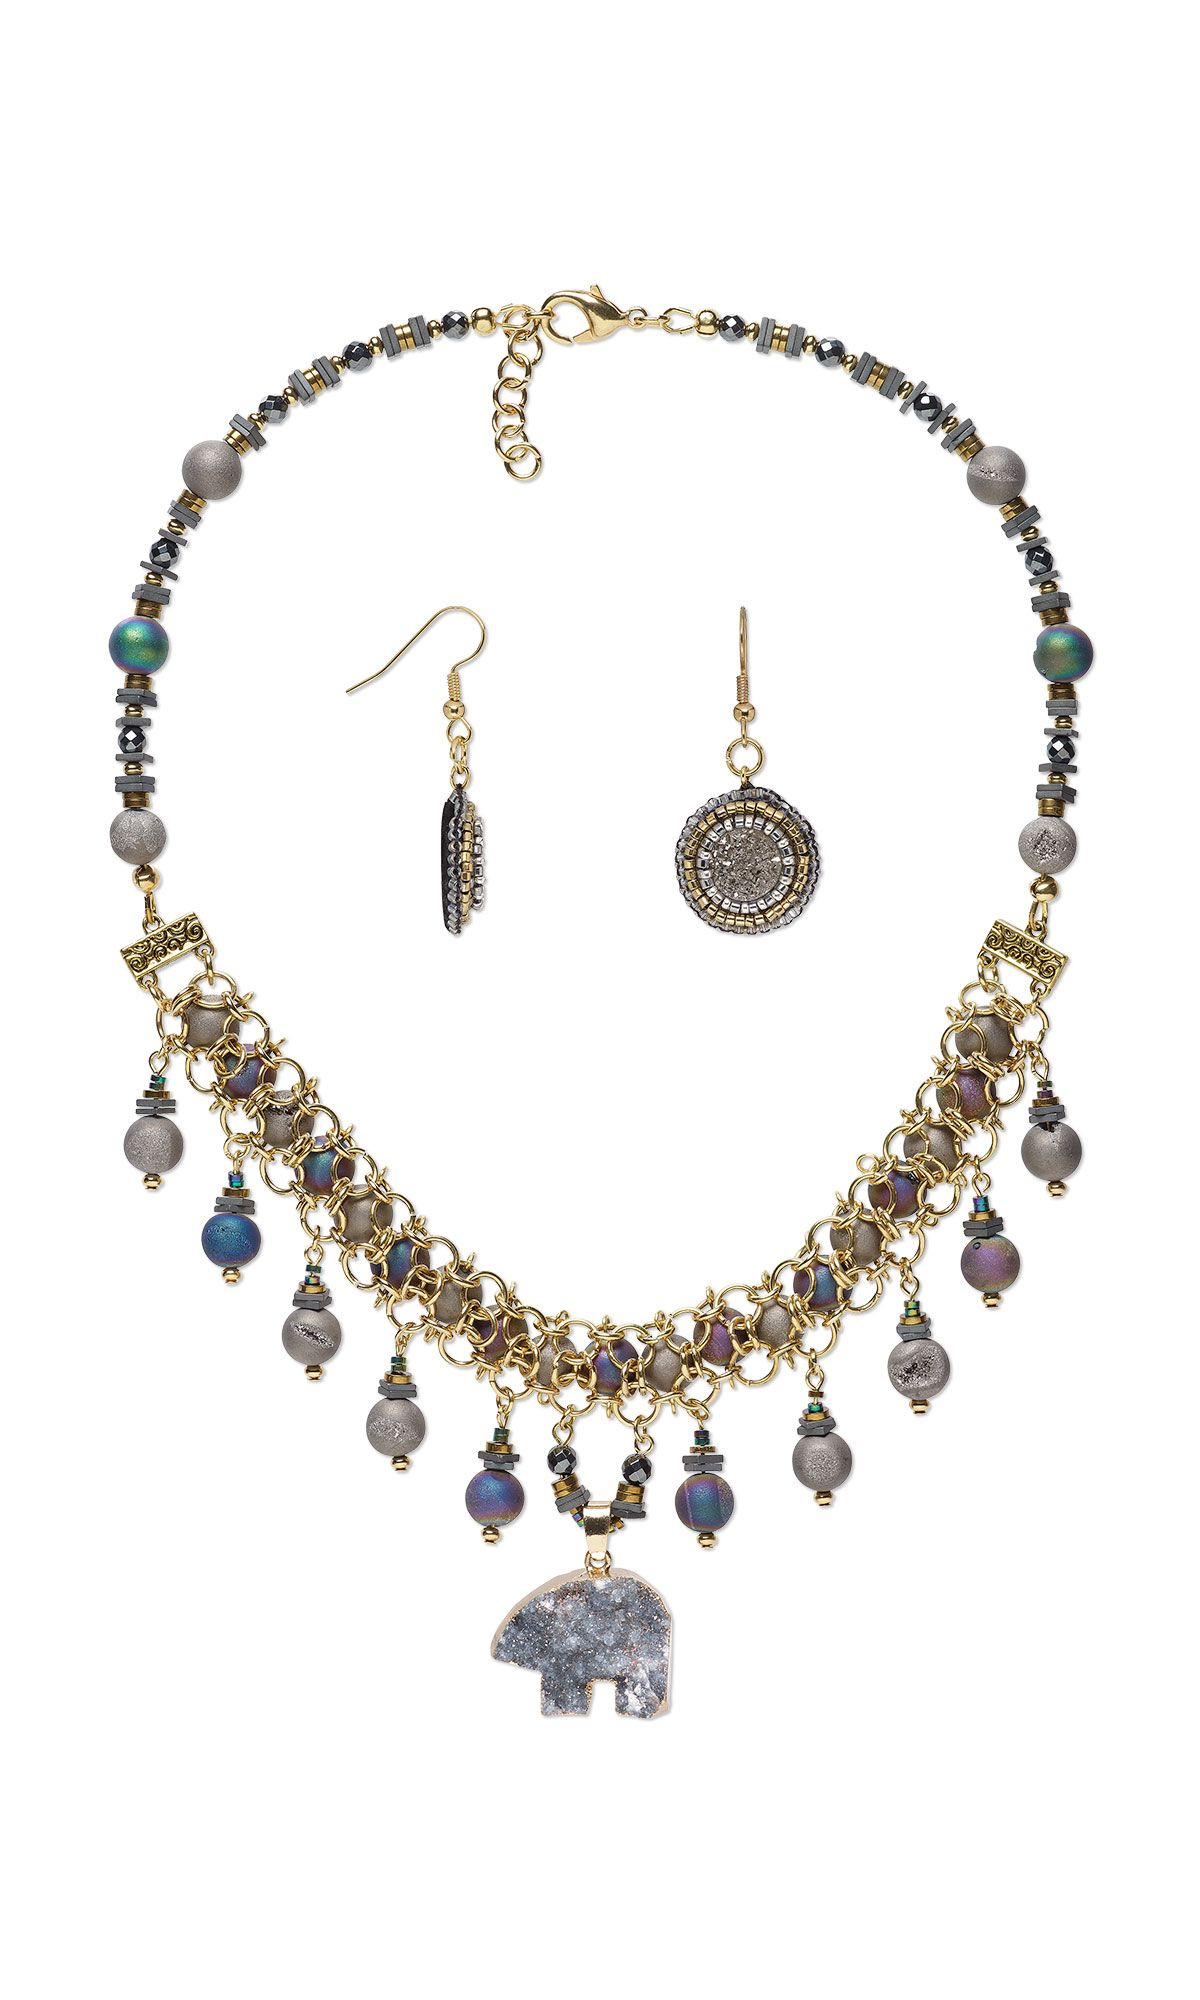 Jewelry design singlestrand necklace and earring set with druzy